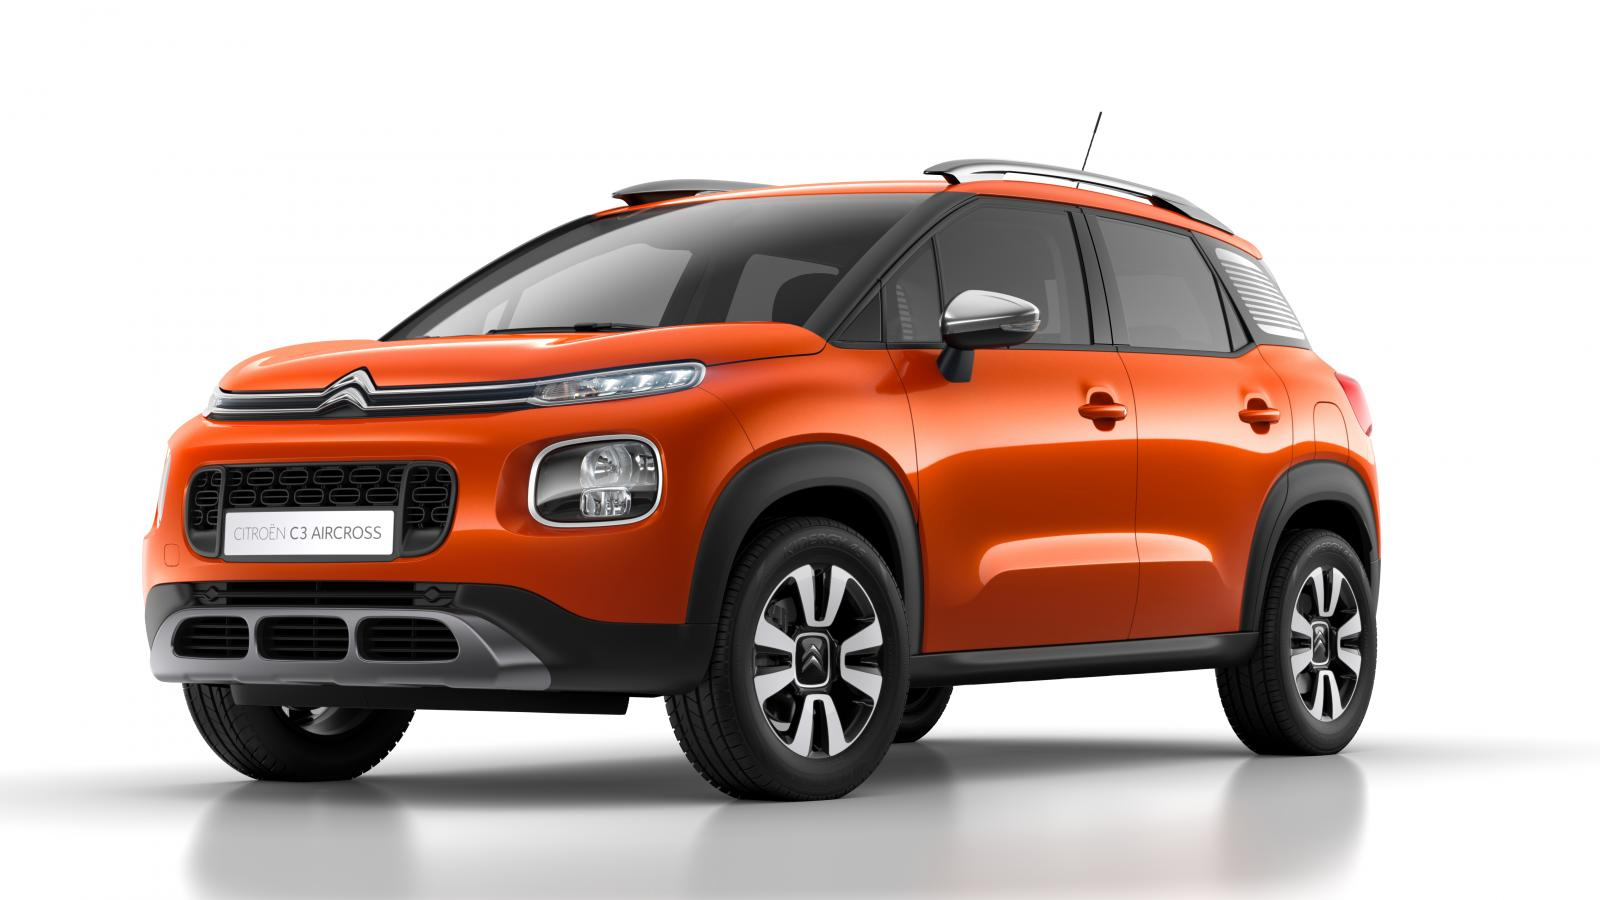 SUV Compact C3 Aircross - Spicy Orange